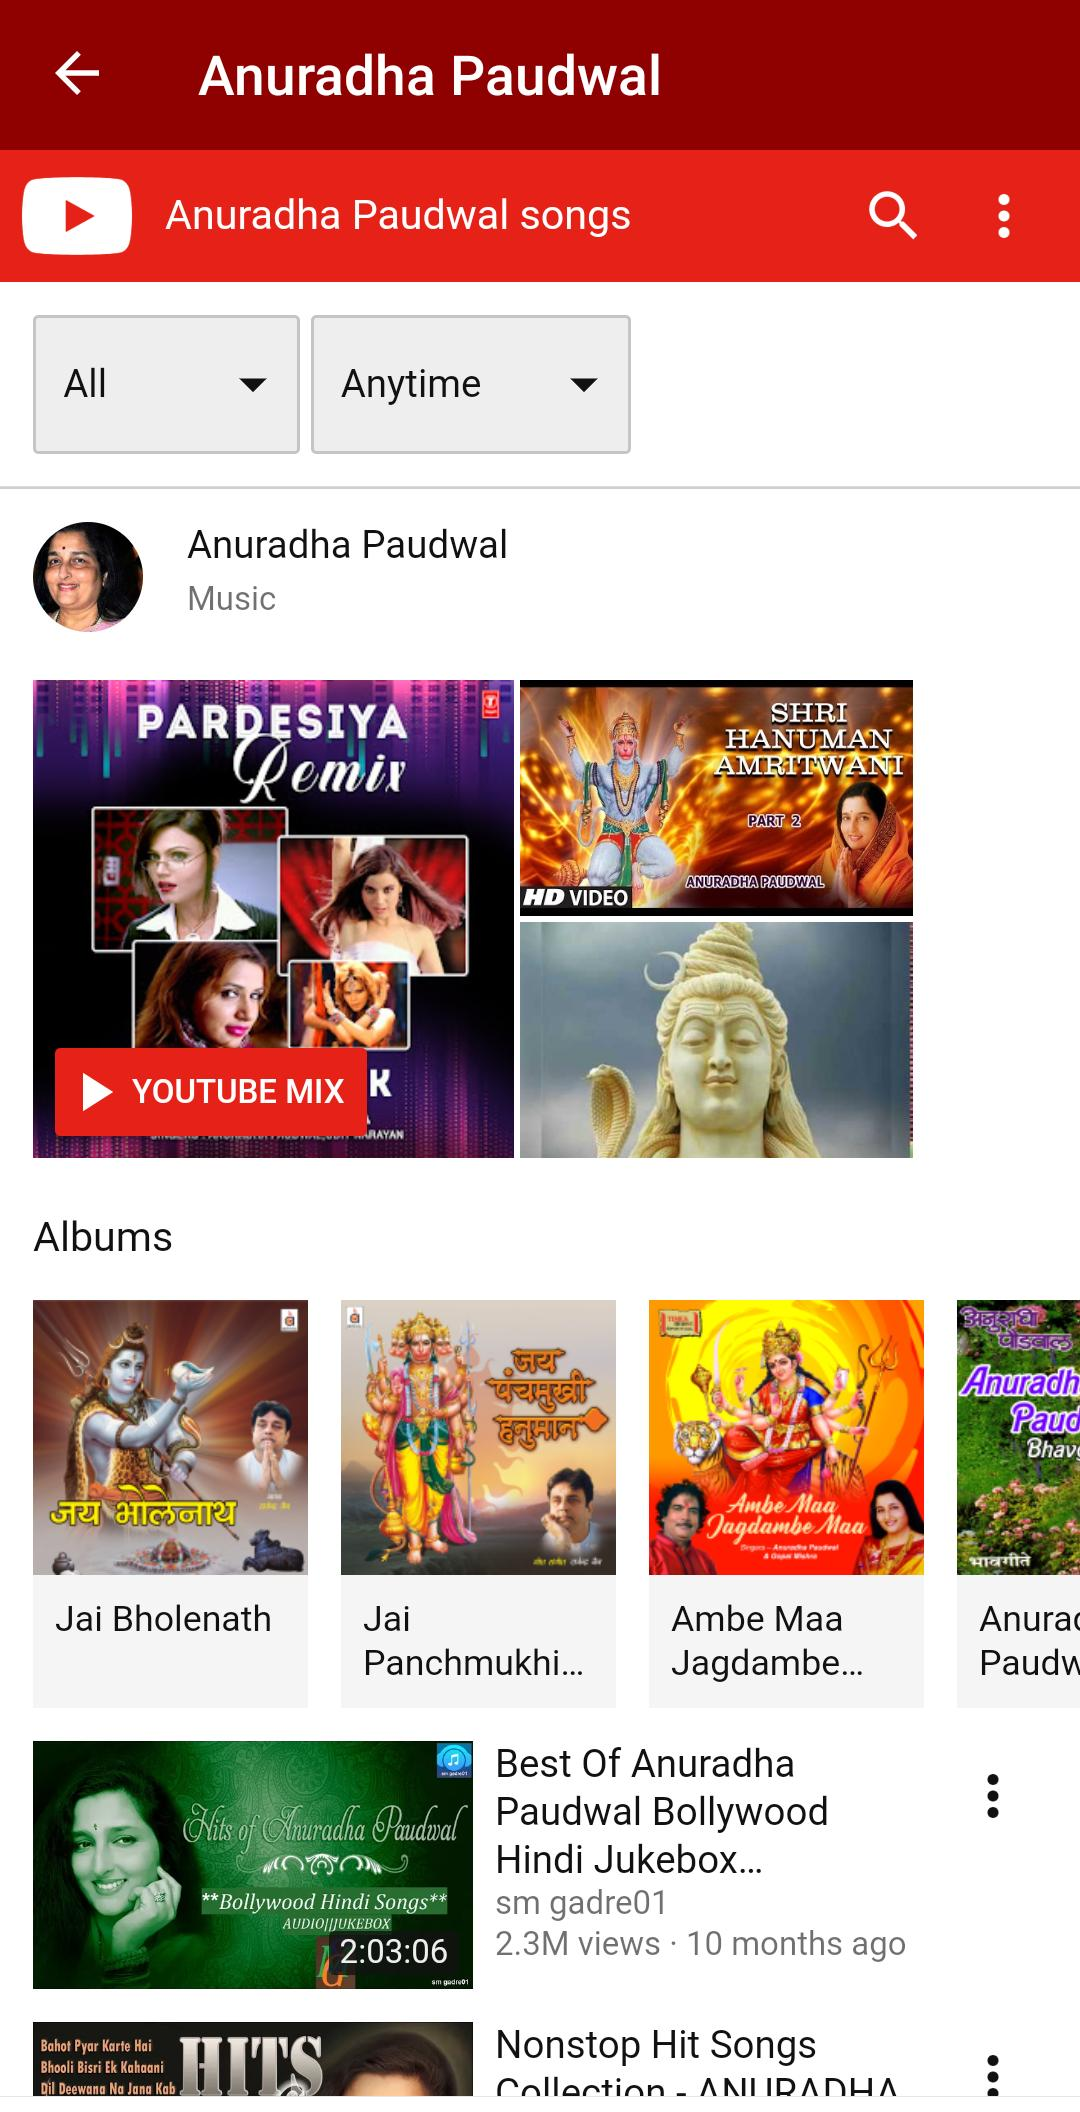 ANURADHA PAUDWAL SONGS for Android - APK Download